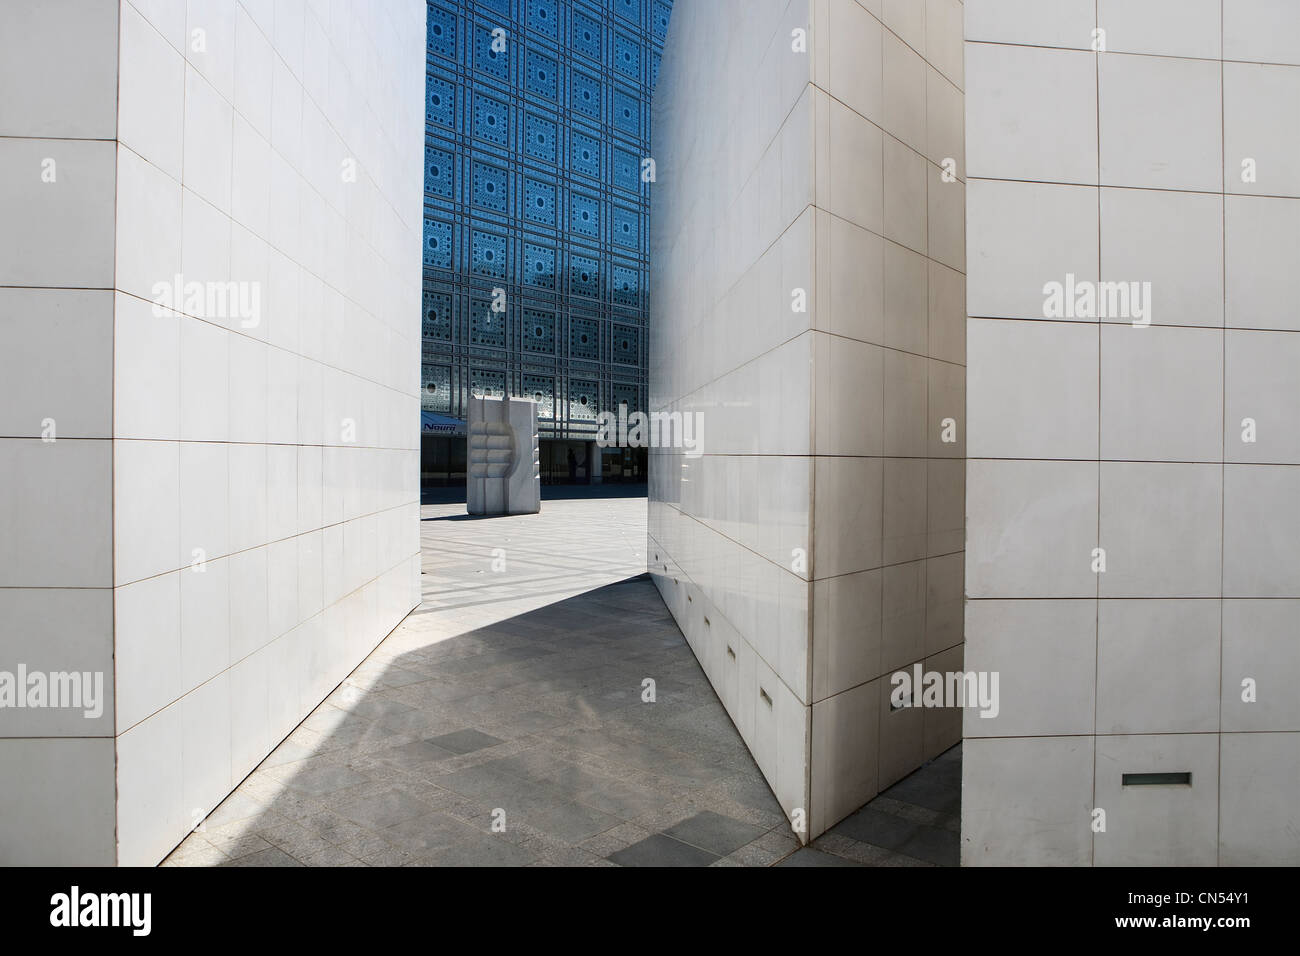 France, Paris, the Intitut du Monde Arabe (Arabic Institute) by the architect Jean Nouvel and architecture studio - Stock Image